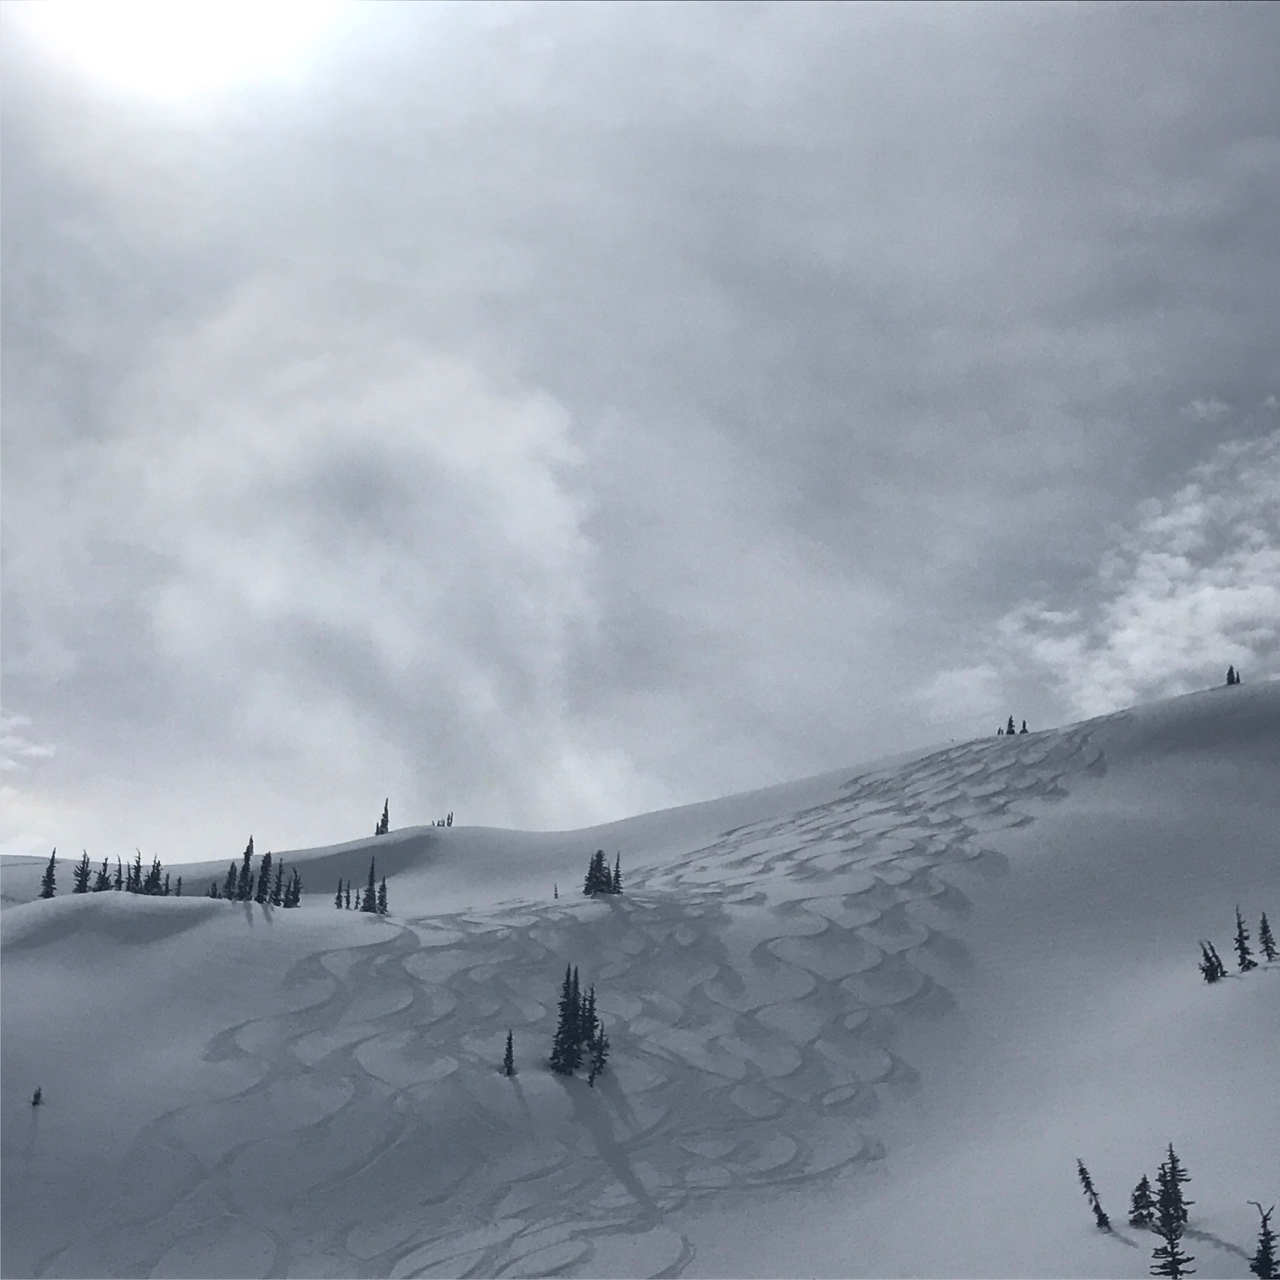 Powder skiing on day 1